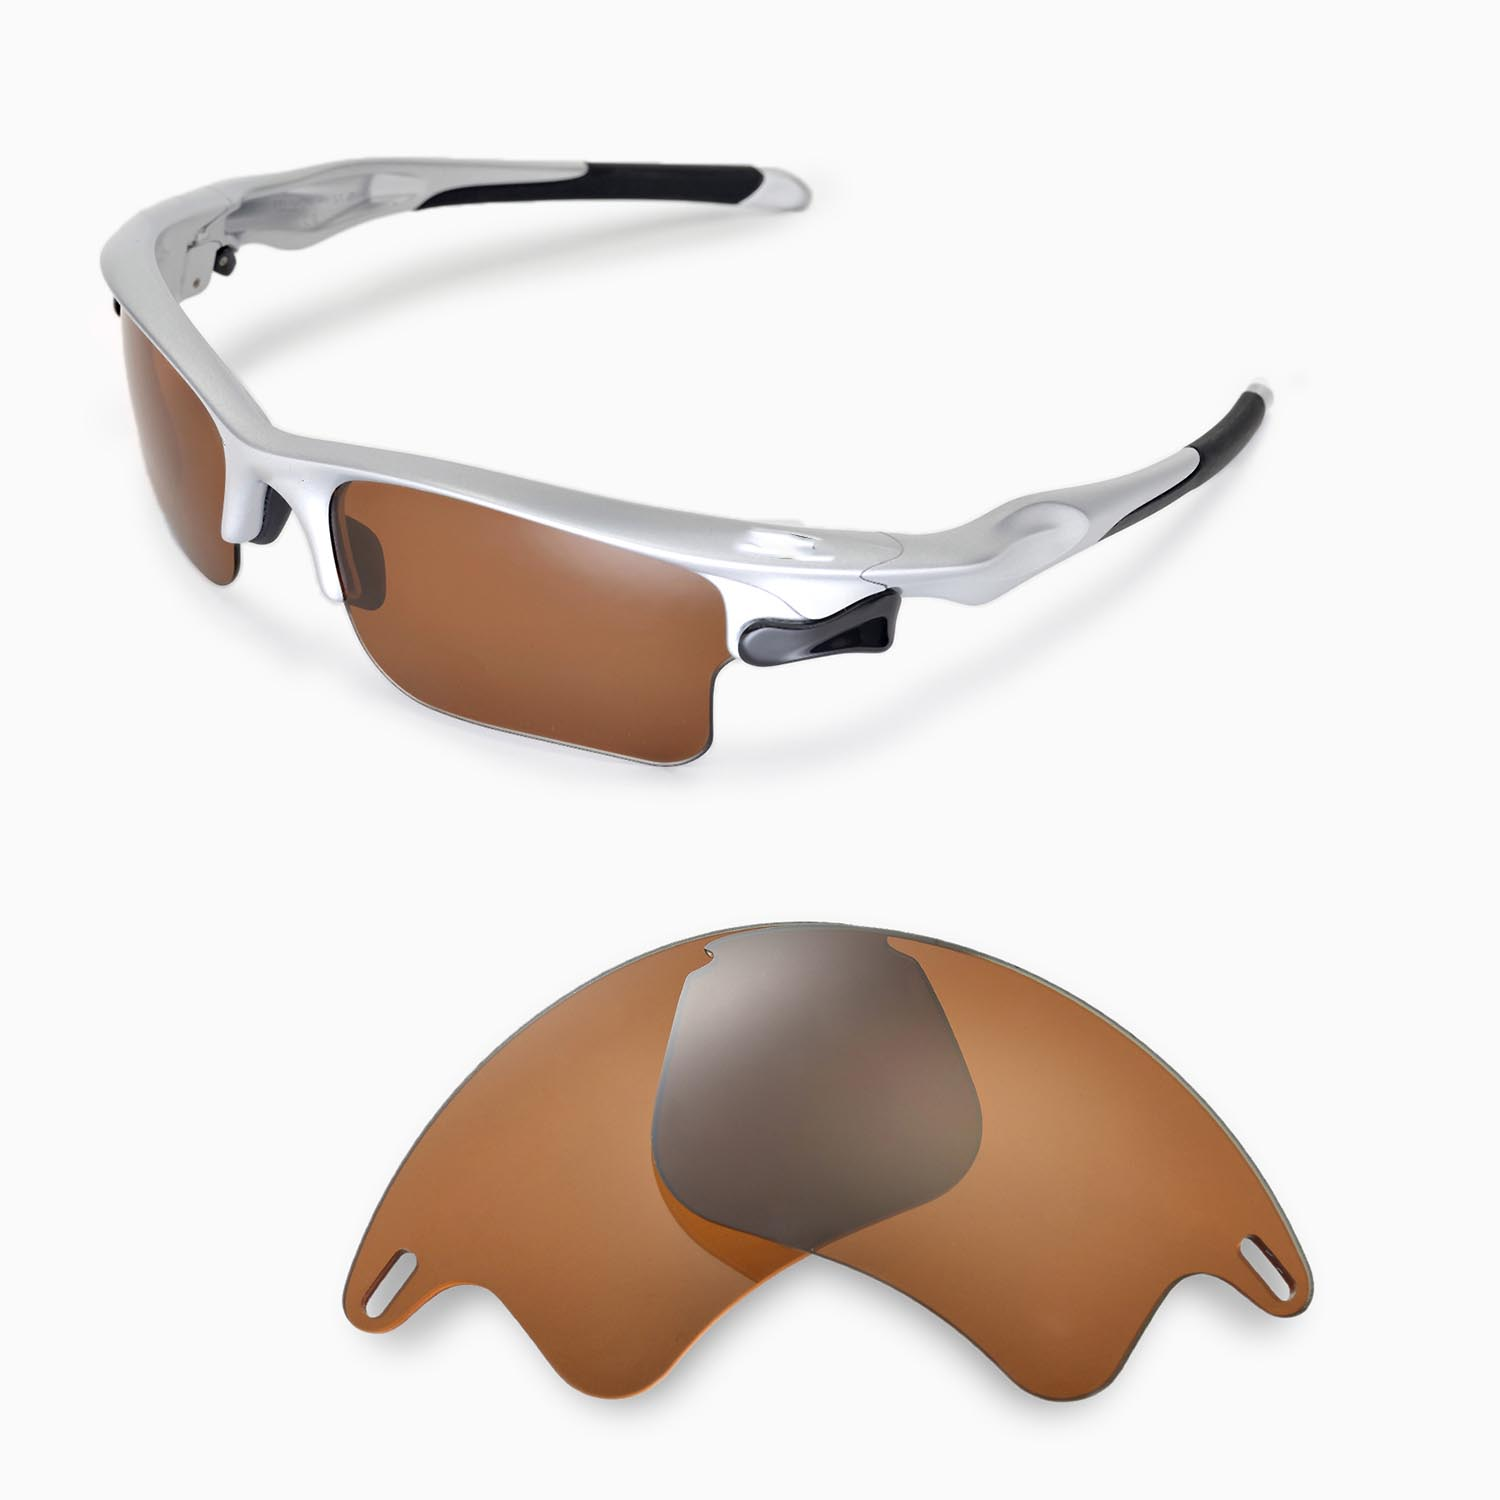 637fca22cb Walleva Polarized Brown Lenses for Oakley Fast Jacket XL x1  Walleva  Microfiber Lens Cleaning Cloth x1. main image